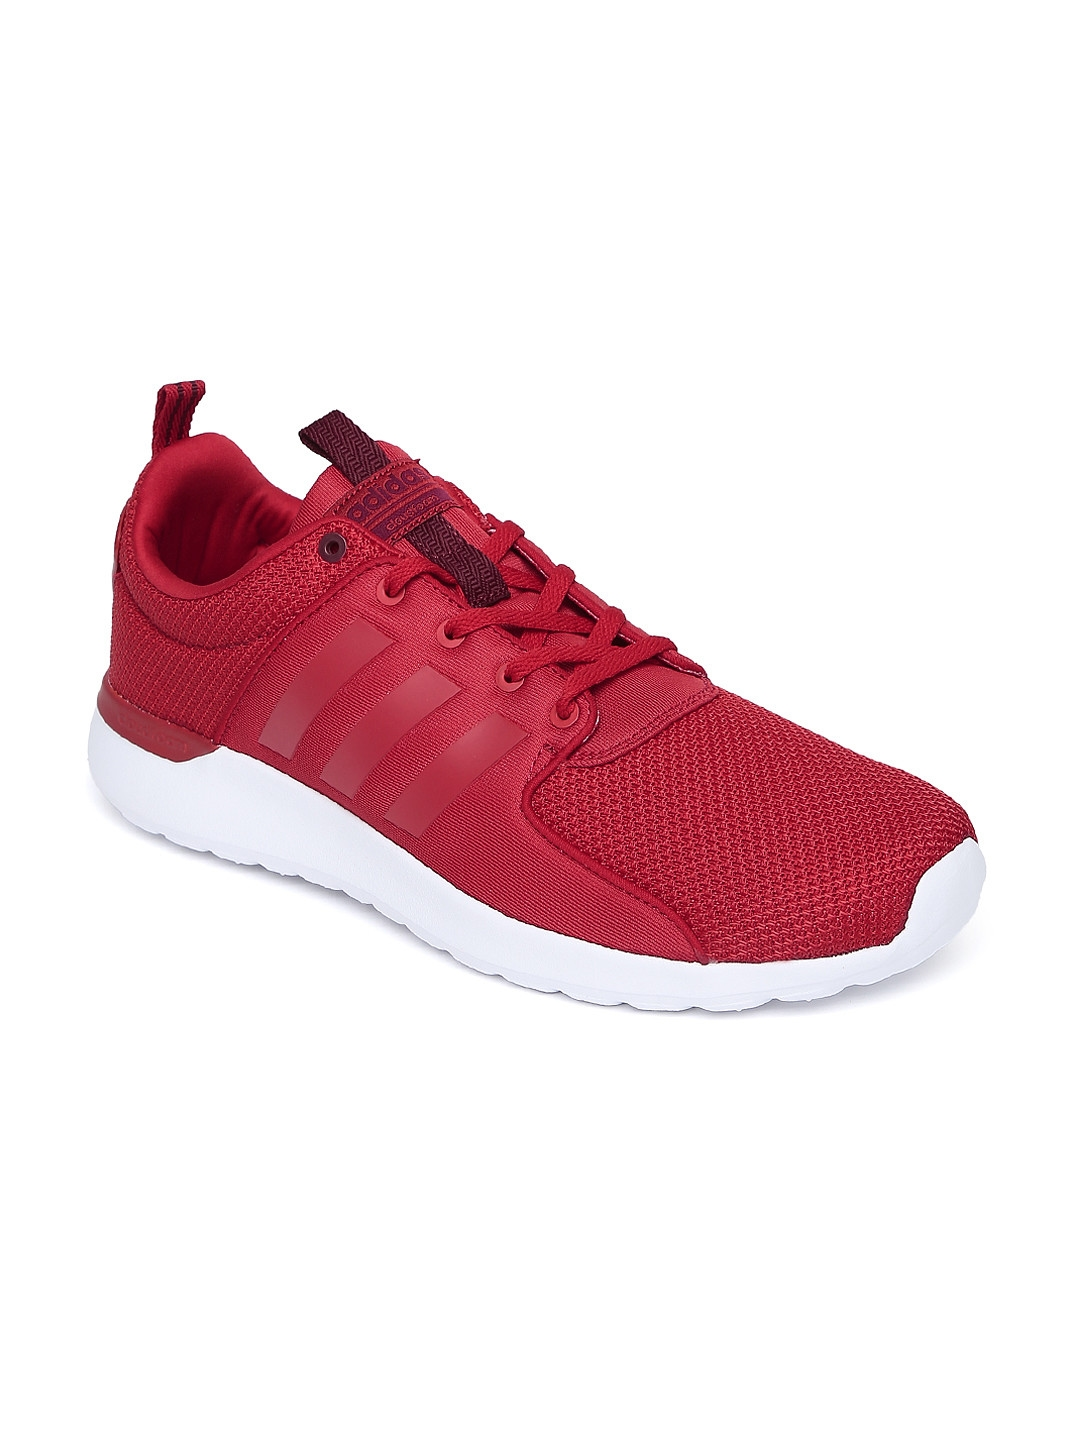 25737f2ad44fb0 Buy ADIDAS NEO Men Red Solid Cloudfoam Lite Racer Sneakers - Casual ...